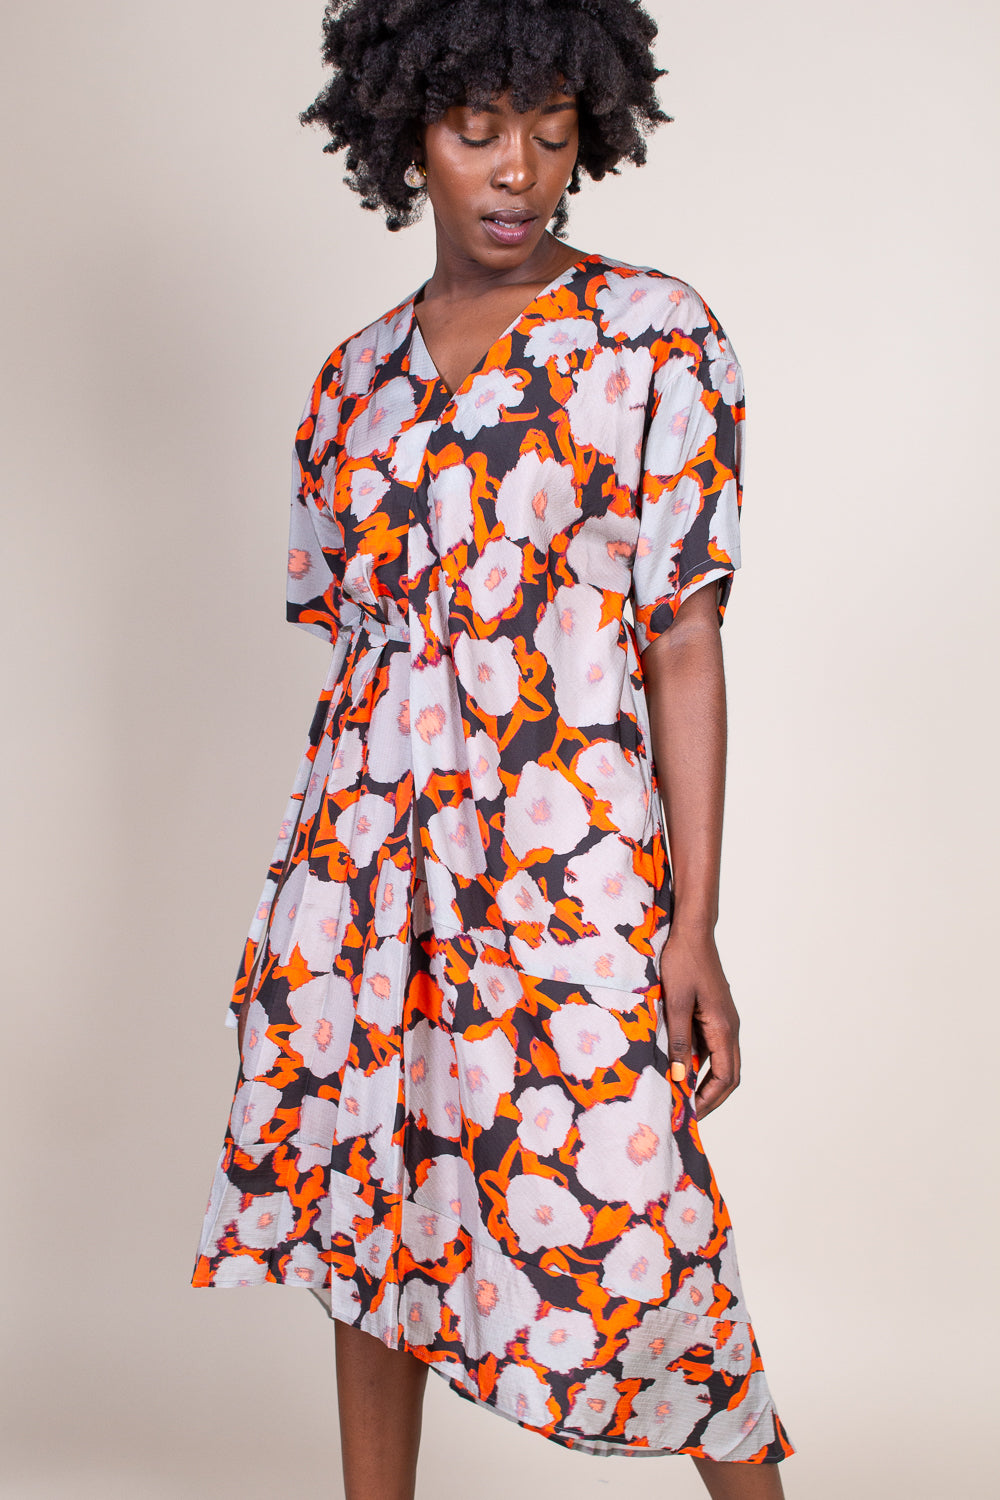 Dimbani Dress in Poppy Fire